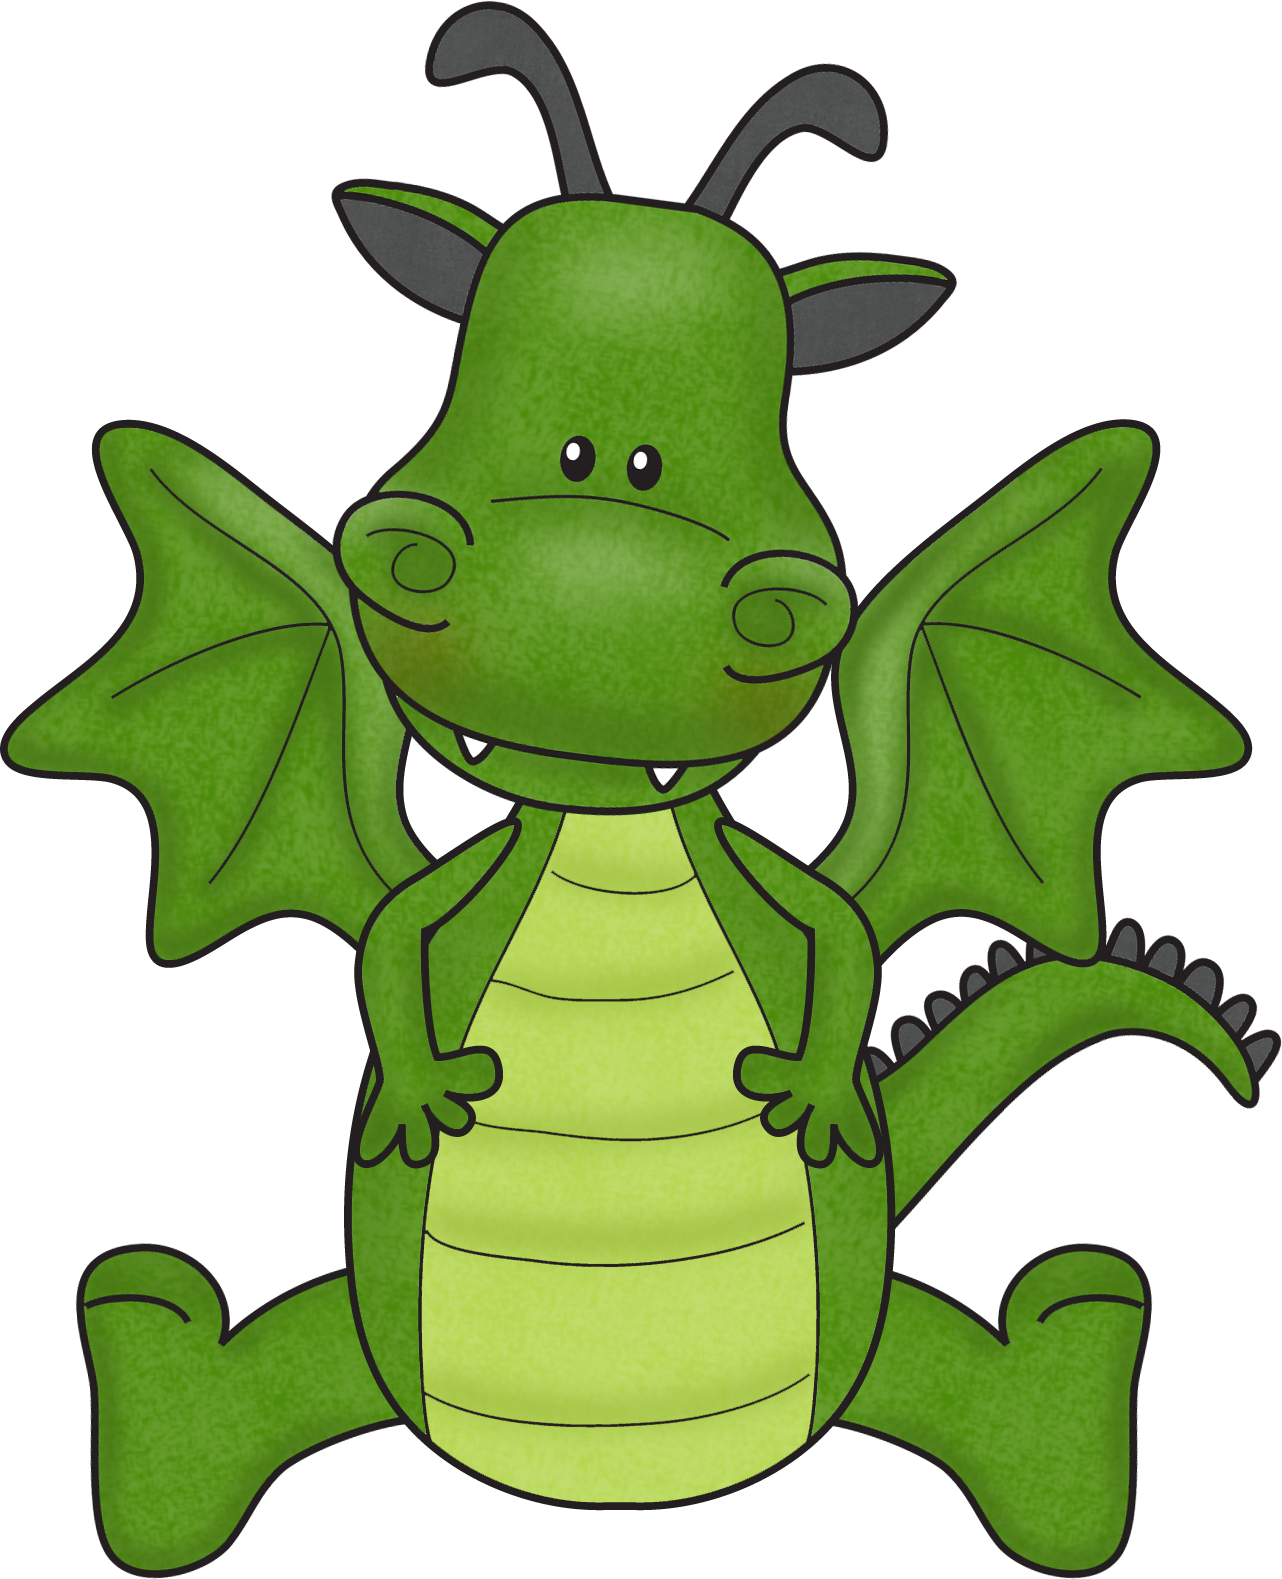 Earth day for kids. Dragon clipart puff the magic dragon